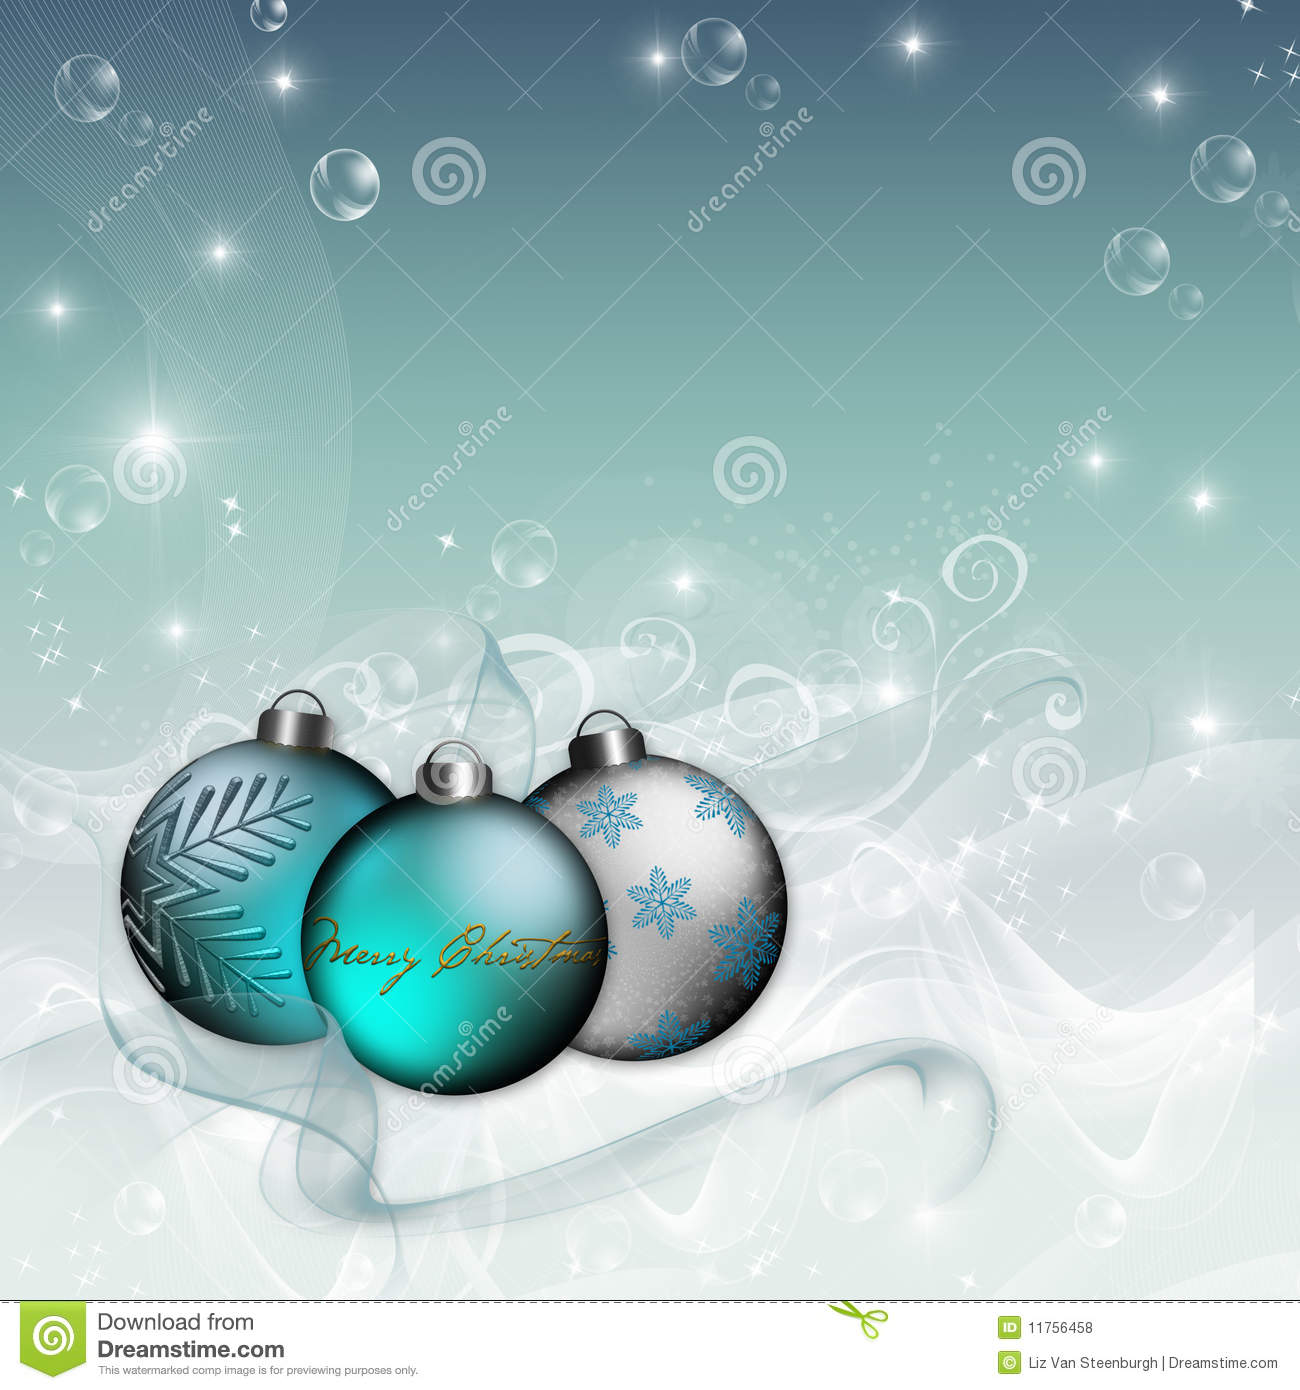 Blue Christmas Tree Wallpaper: Blue Ornament Christmas Background Royalty Free Stock